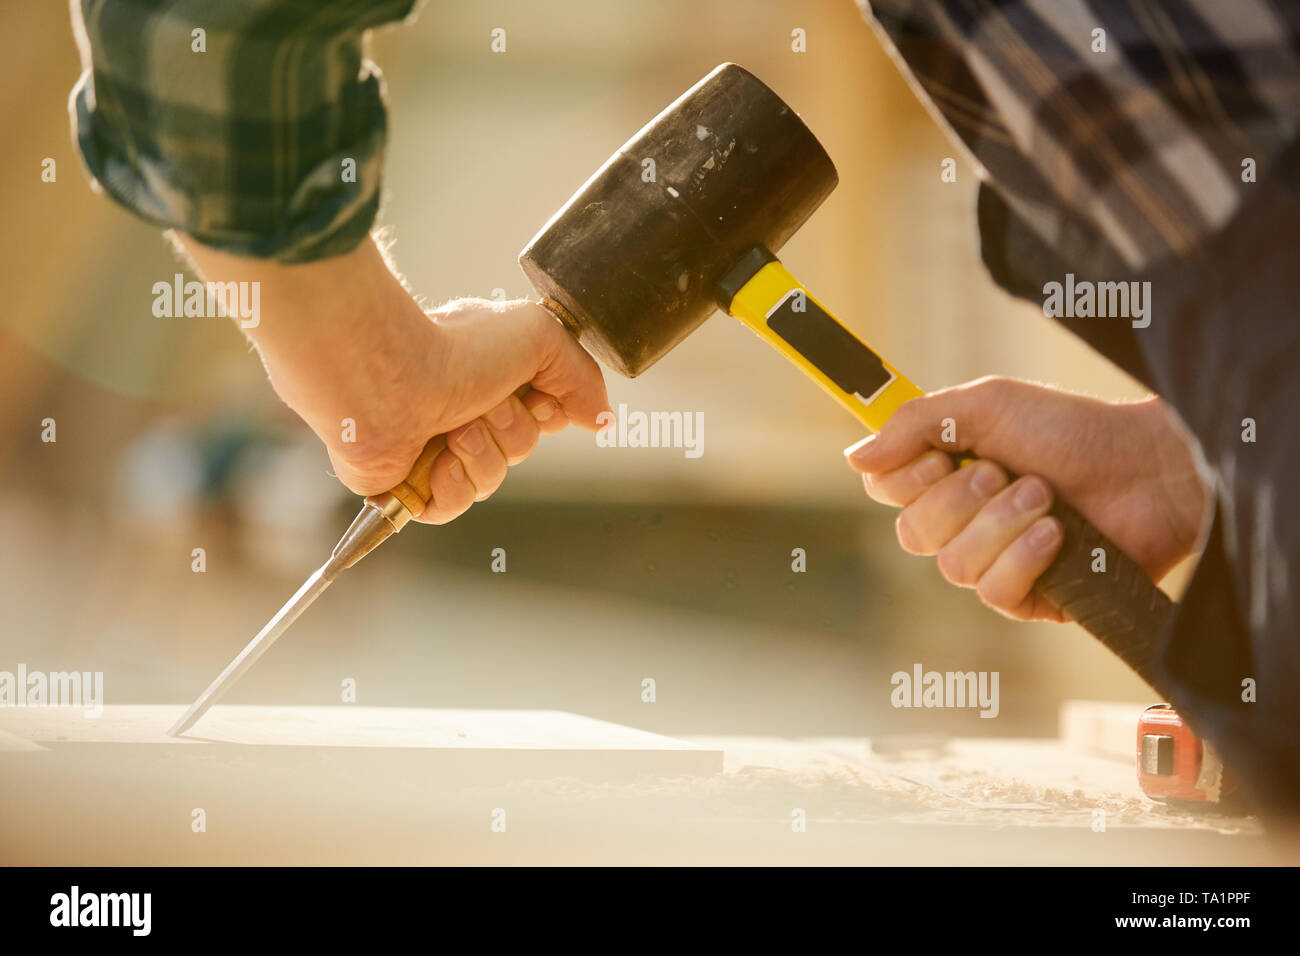 Closeup of unrecognizable carpenter hitting nail with hammer while working in joinery, copy space - Stock Image